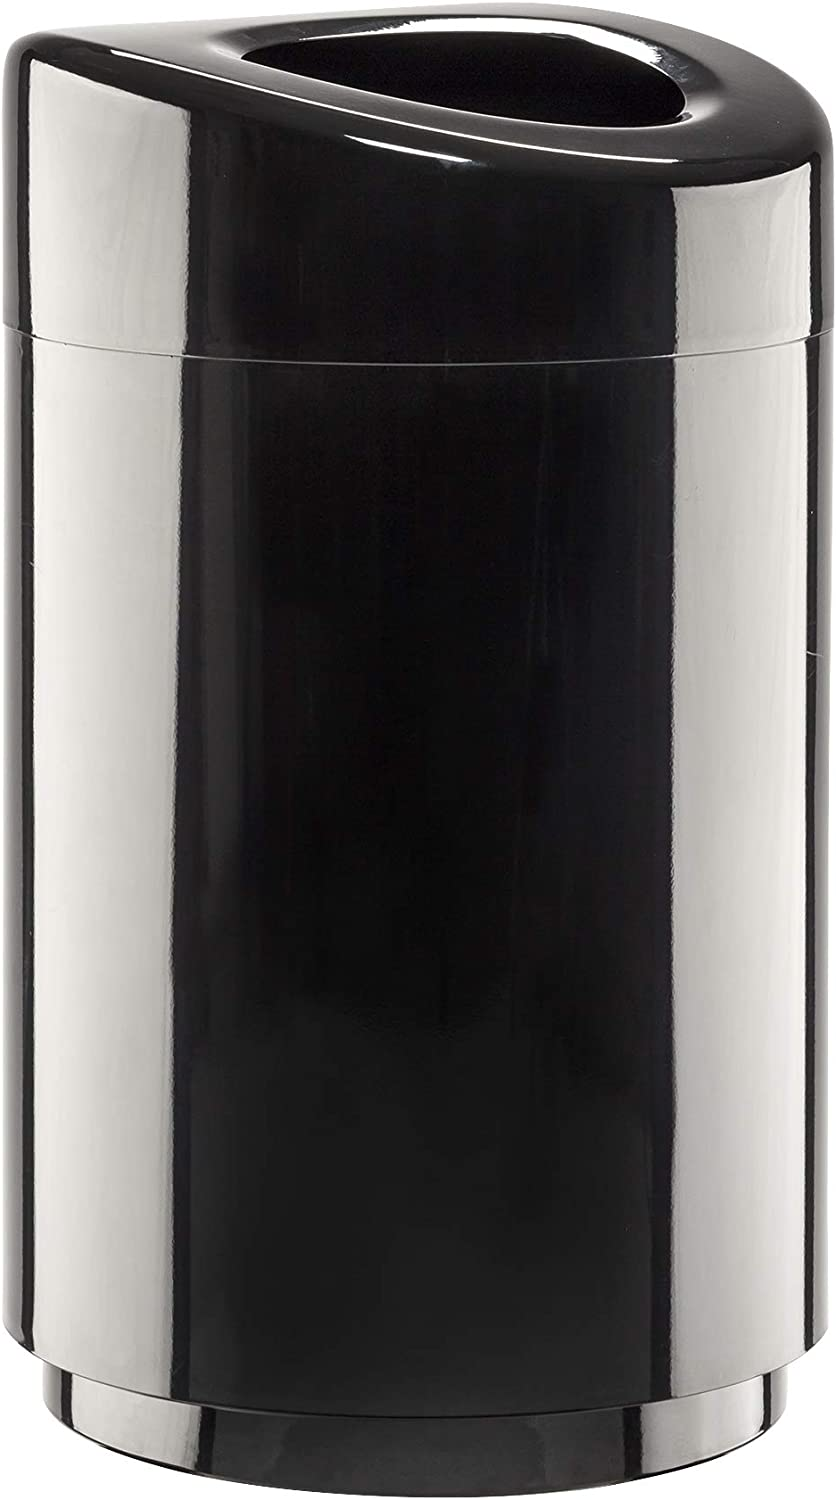 Safco Products Open Top Trash Receptacle with Liner 9920BL, Black, 30 Gallon Capacity, Hands-free Disposal, Modern Styling